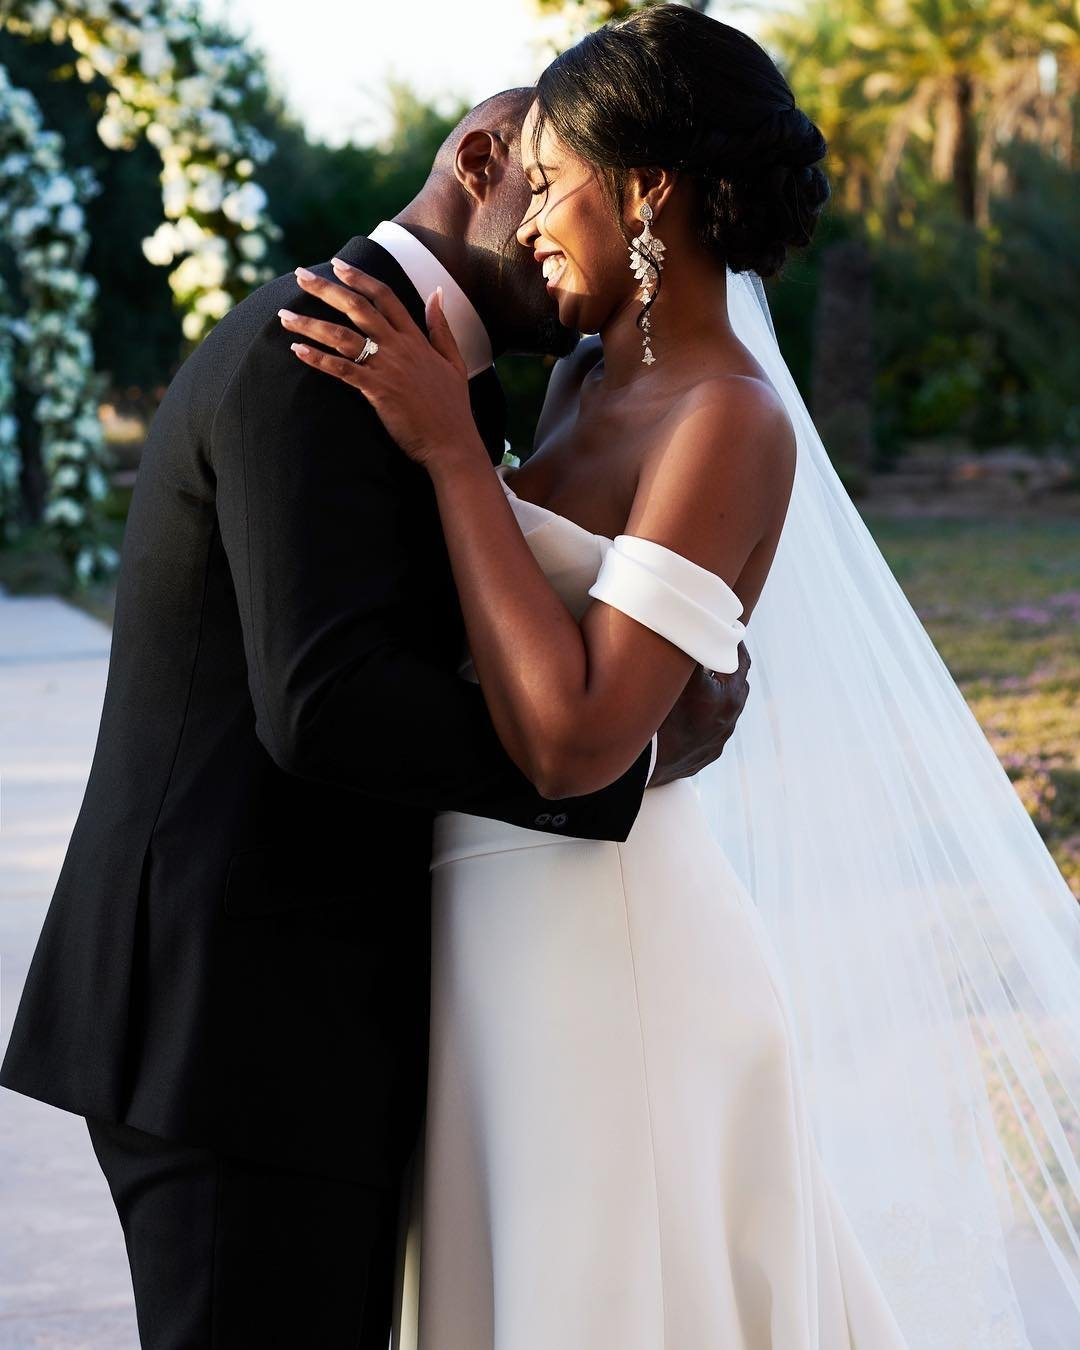 Idris Elba and Sabrina Dhowre tie the knot in Morocco. [PHOTOS] 3